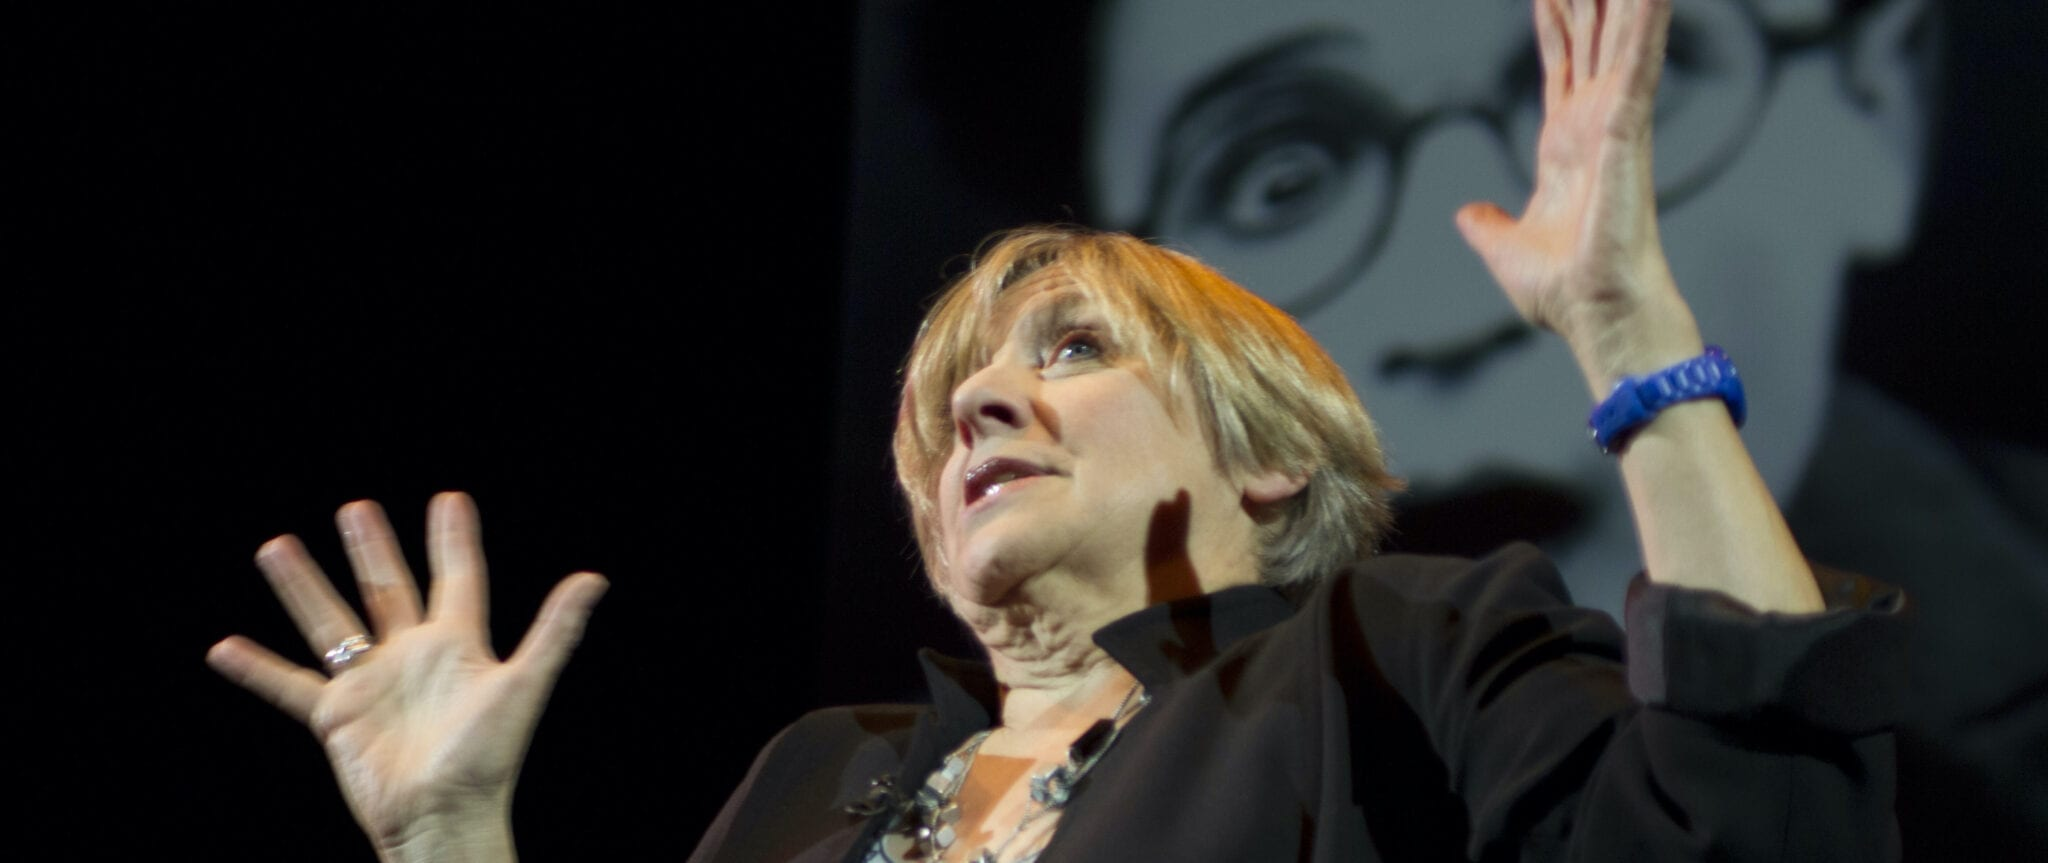 Laughter In Lockdown #6 – Remembering the comedy genius of Victoria Wood